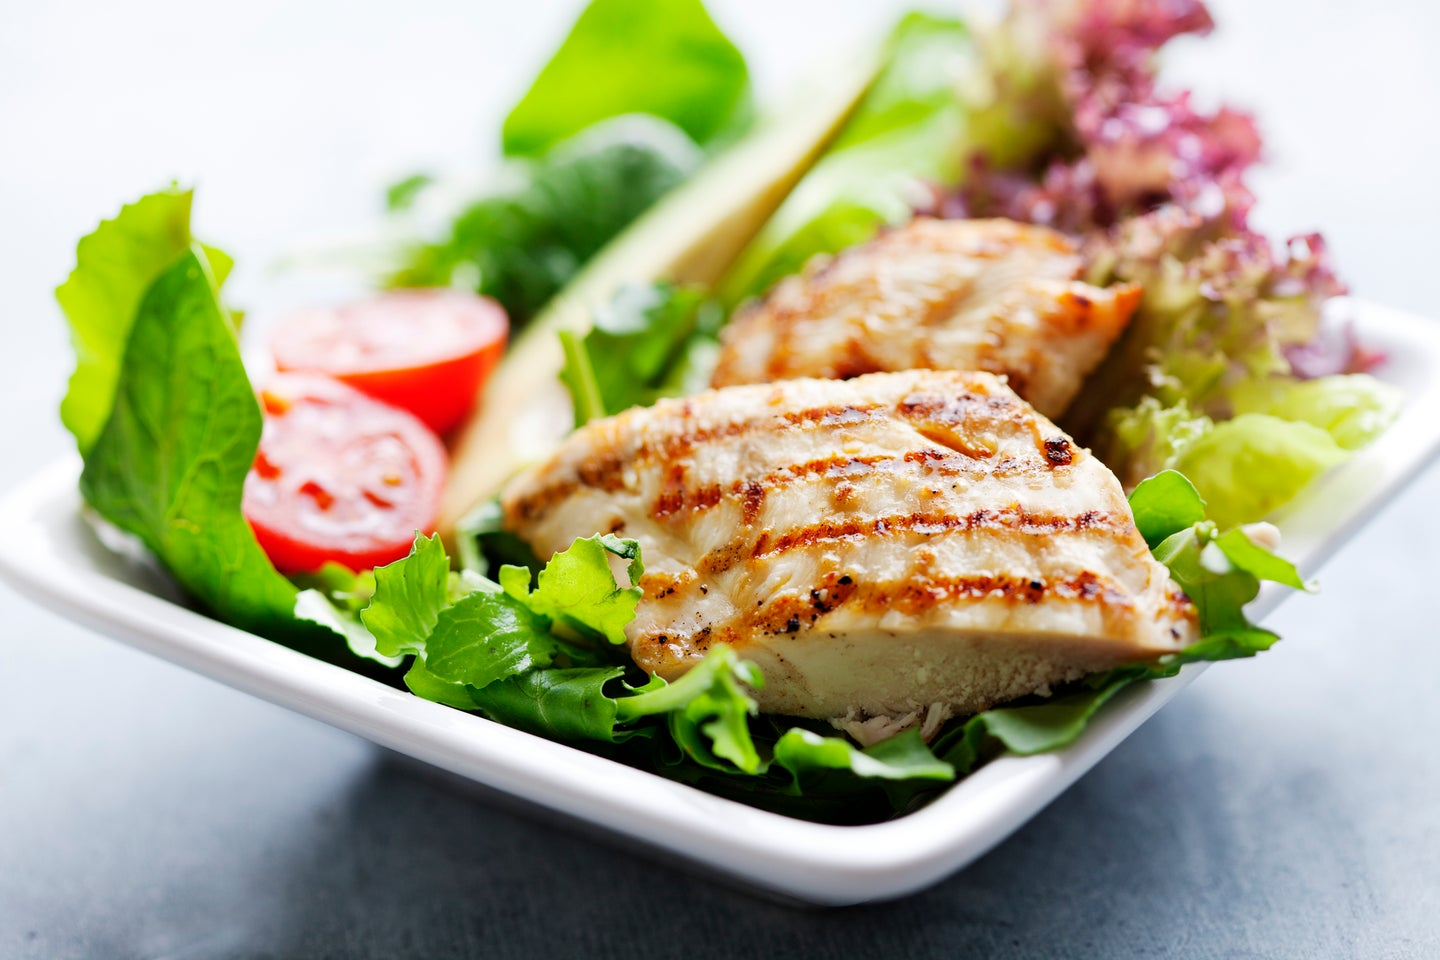 closeup of healthy salad with grilled chicken fillet, selection of lettuce, tomatoes and avocado,